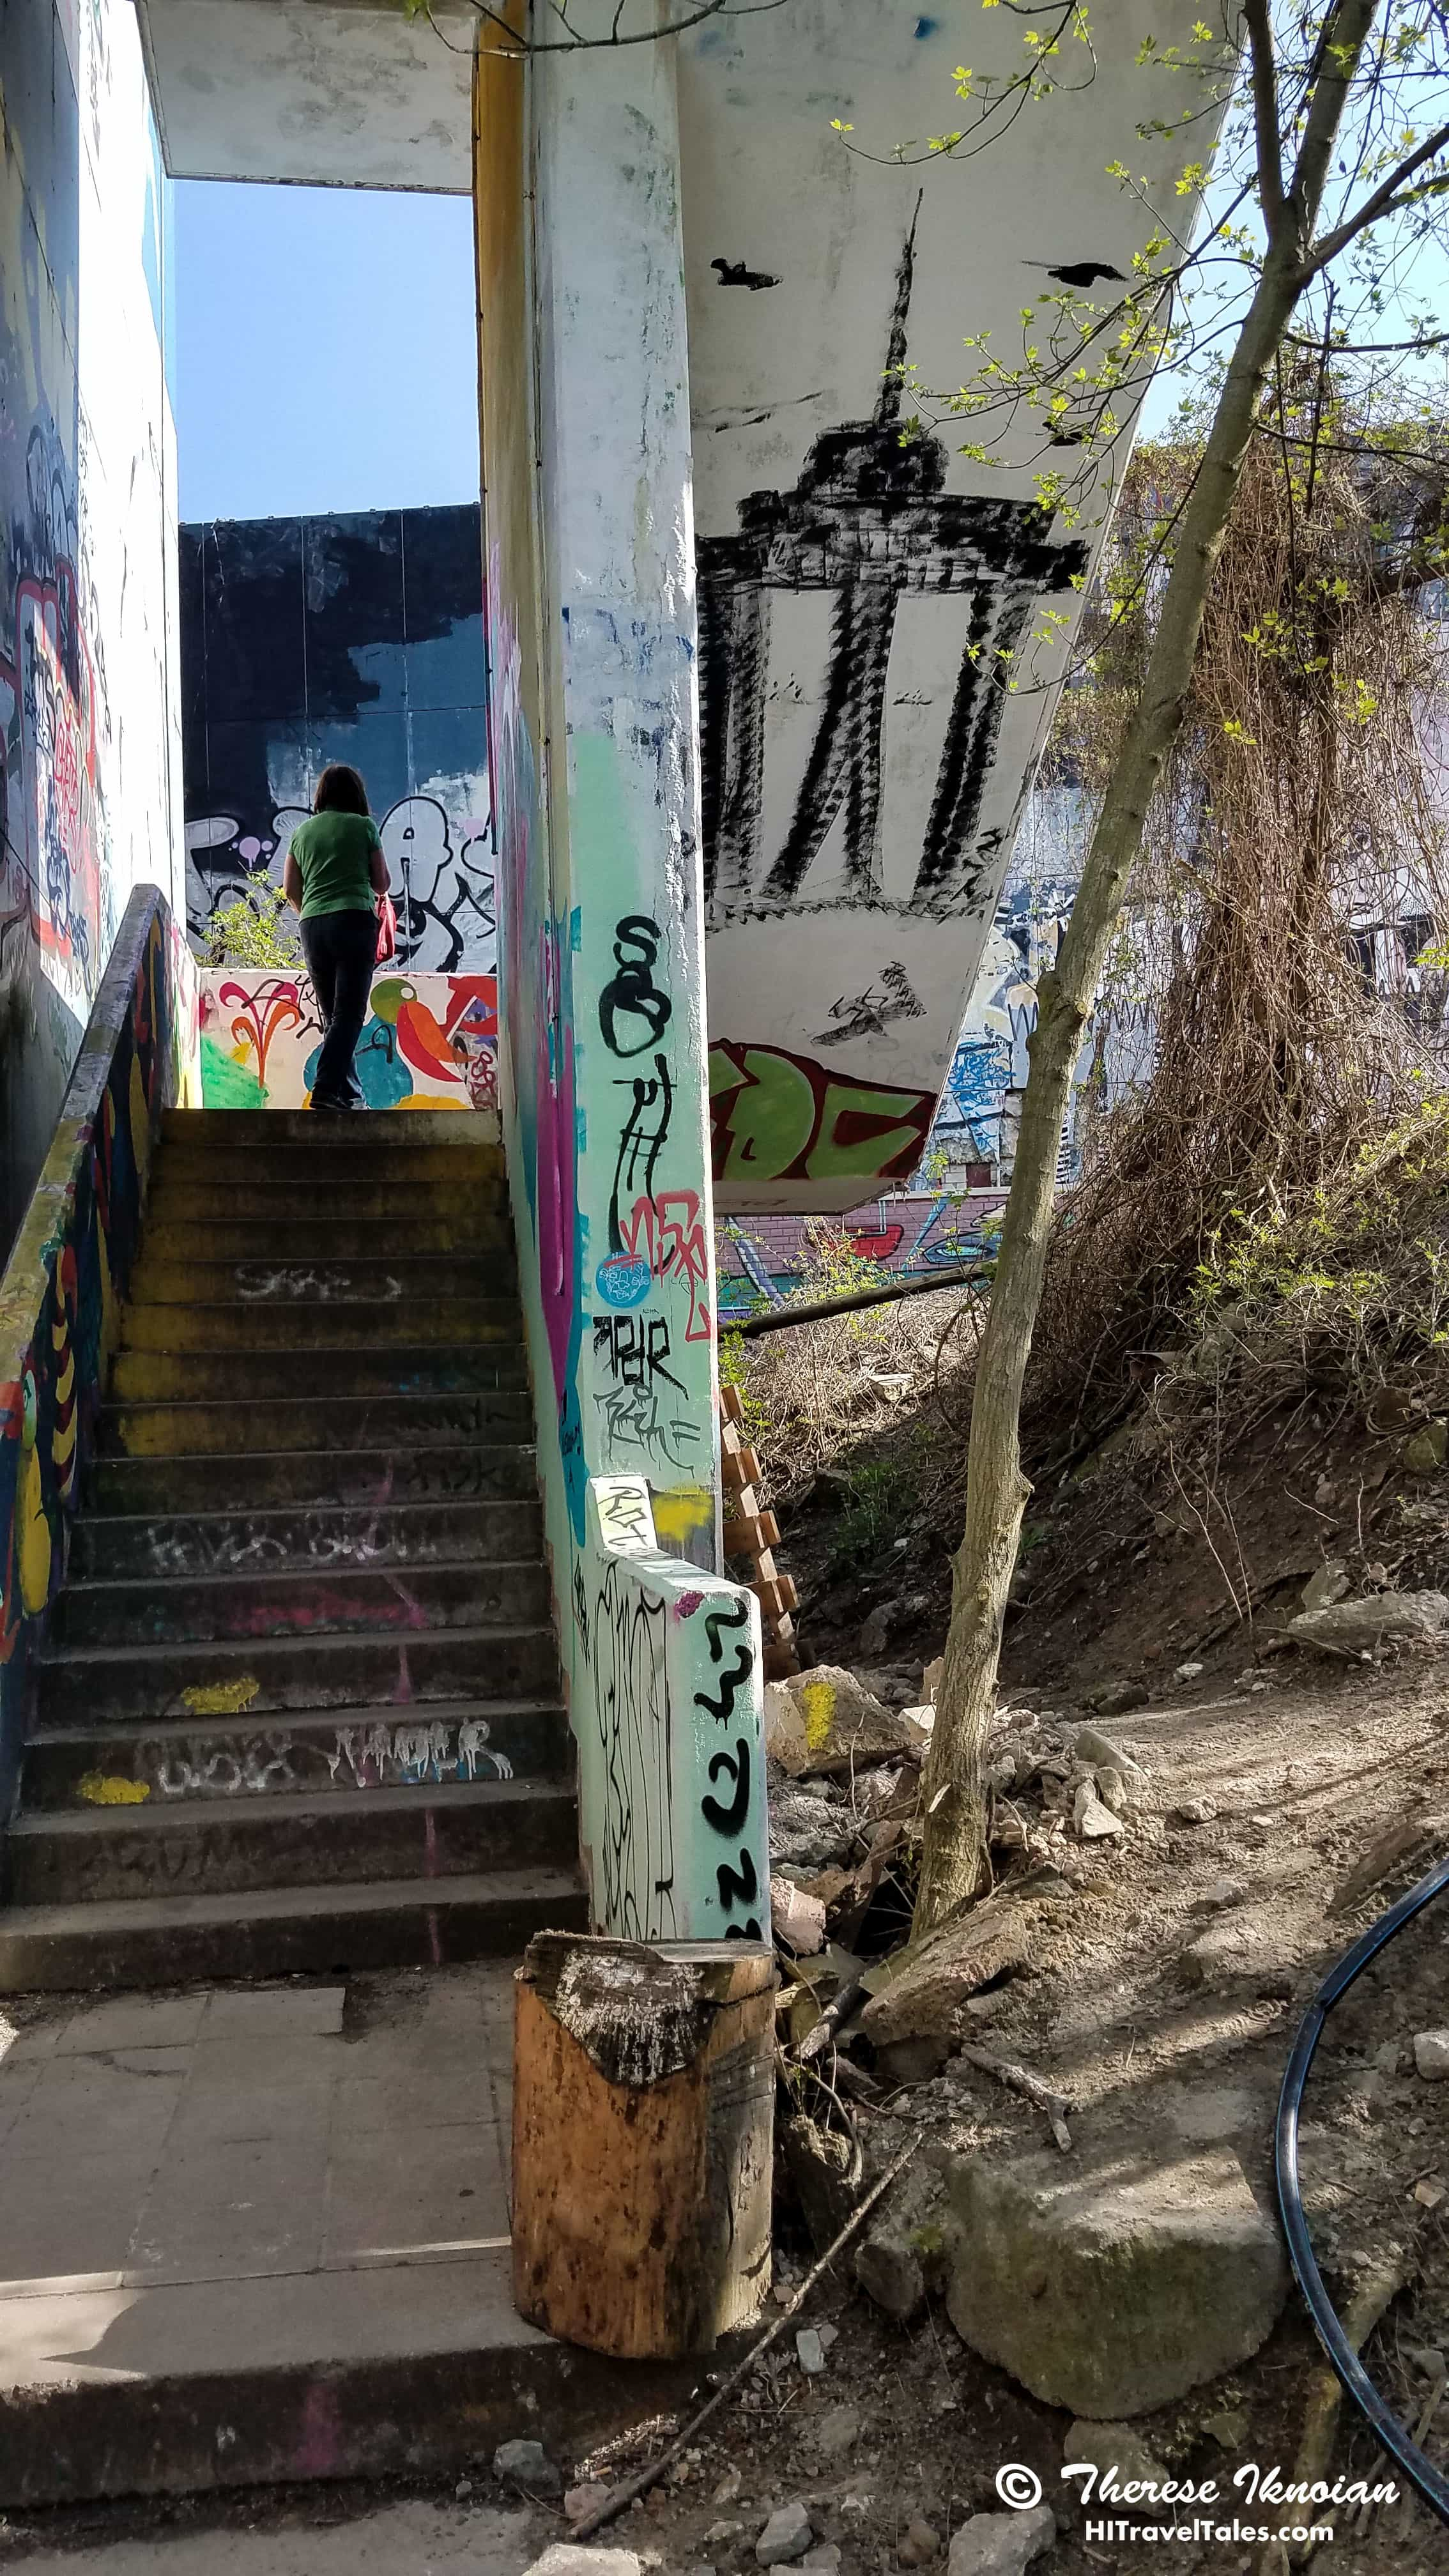 Climbing the stairs into Teufelsberg exhibits.